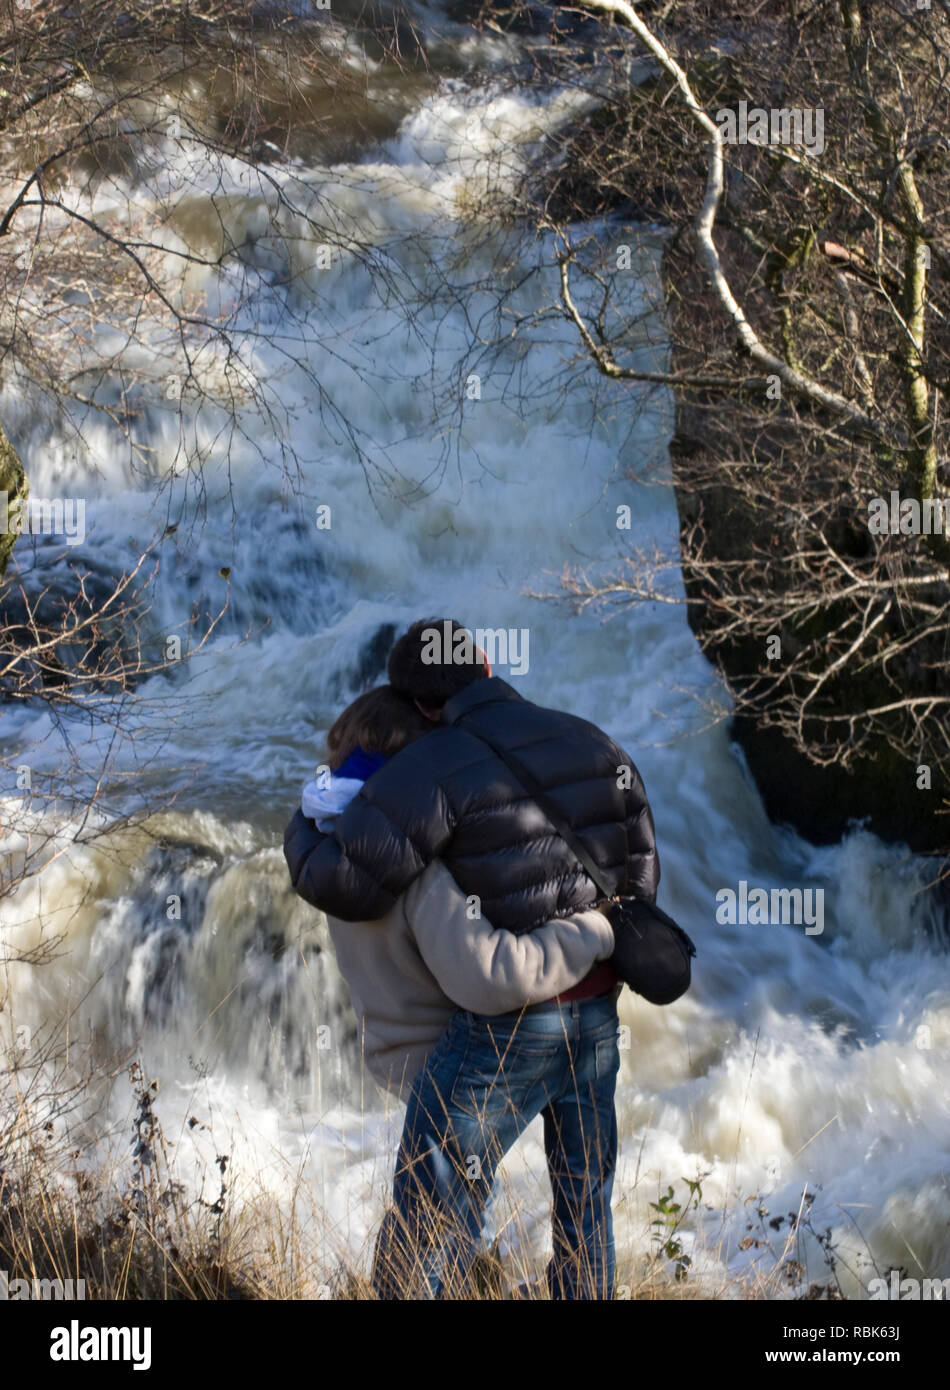 Rear view of couple watching leaping salmon. River Marteg SSSI, Gilfach farm nature reserve, Radnorshire Wildlife Trust, November. Model released - Stock Image